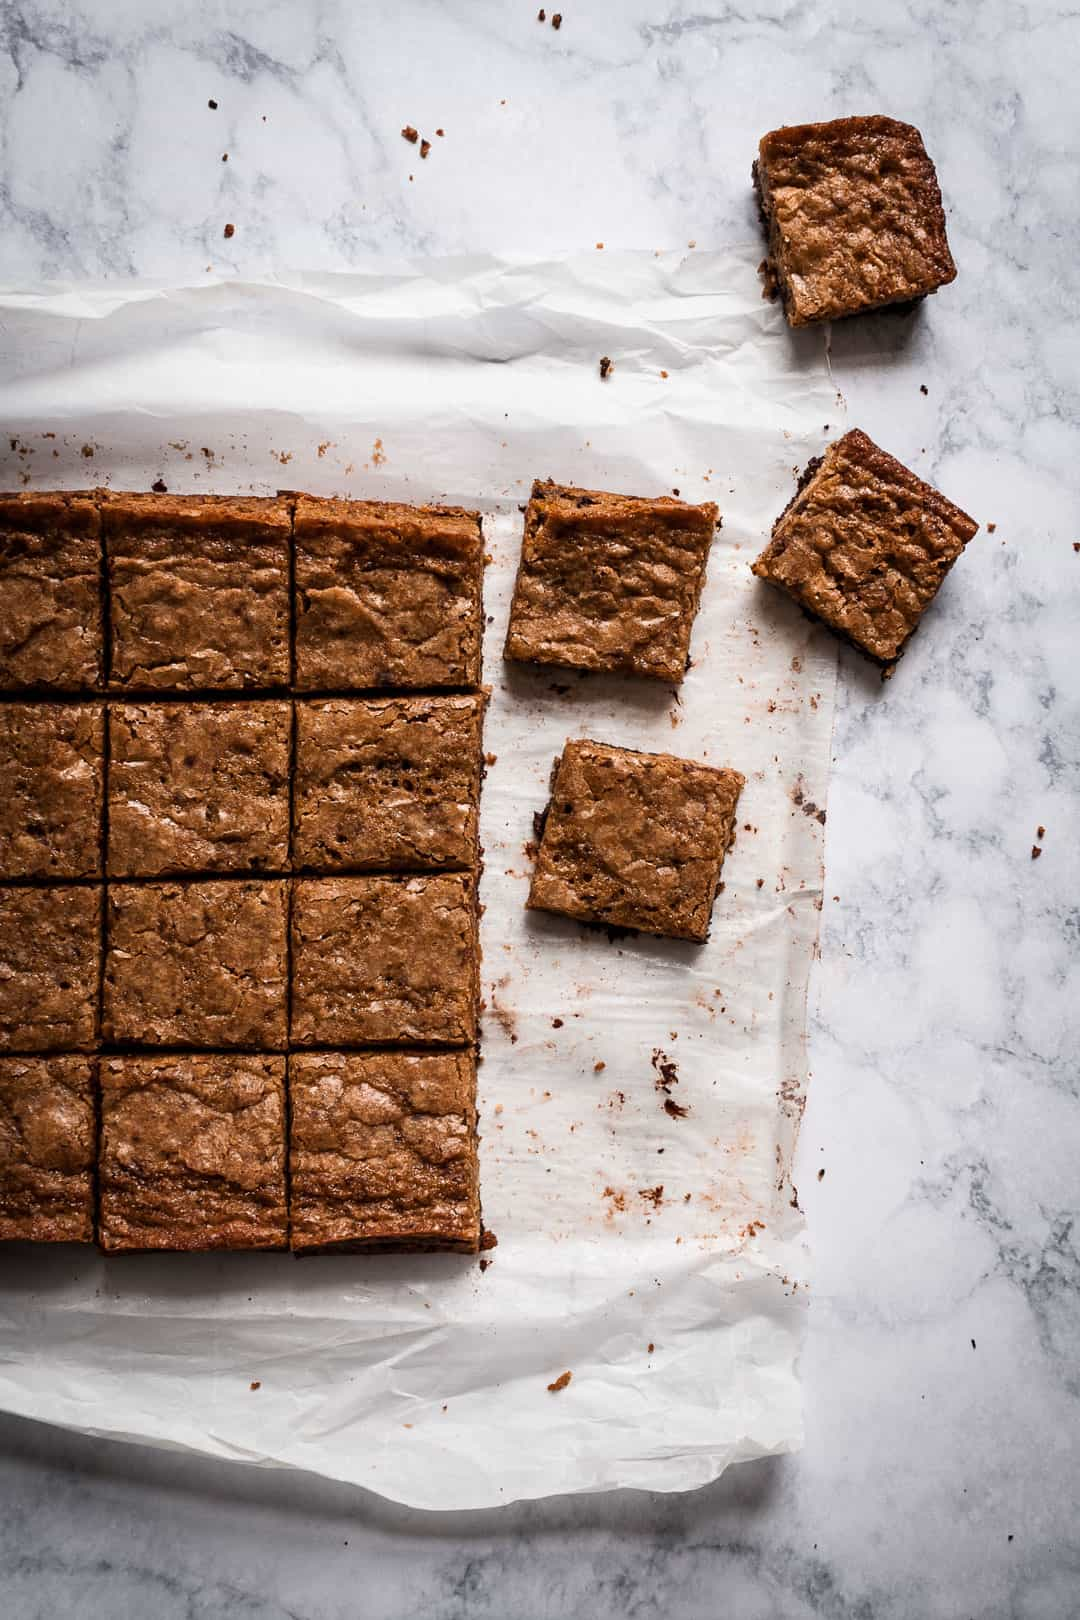 butterscotch dark chocolate bars on parchment paper cooling on a marble countertop